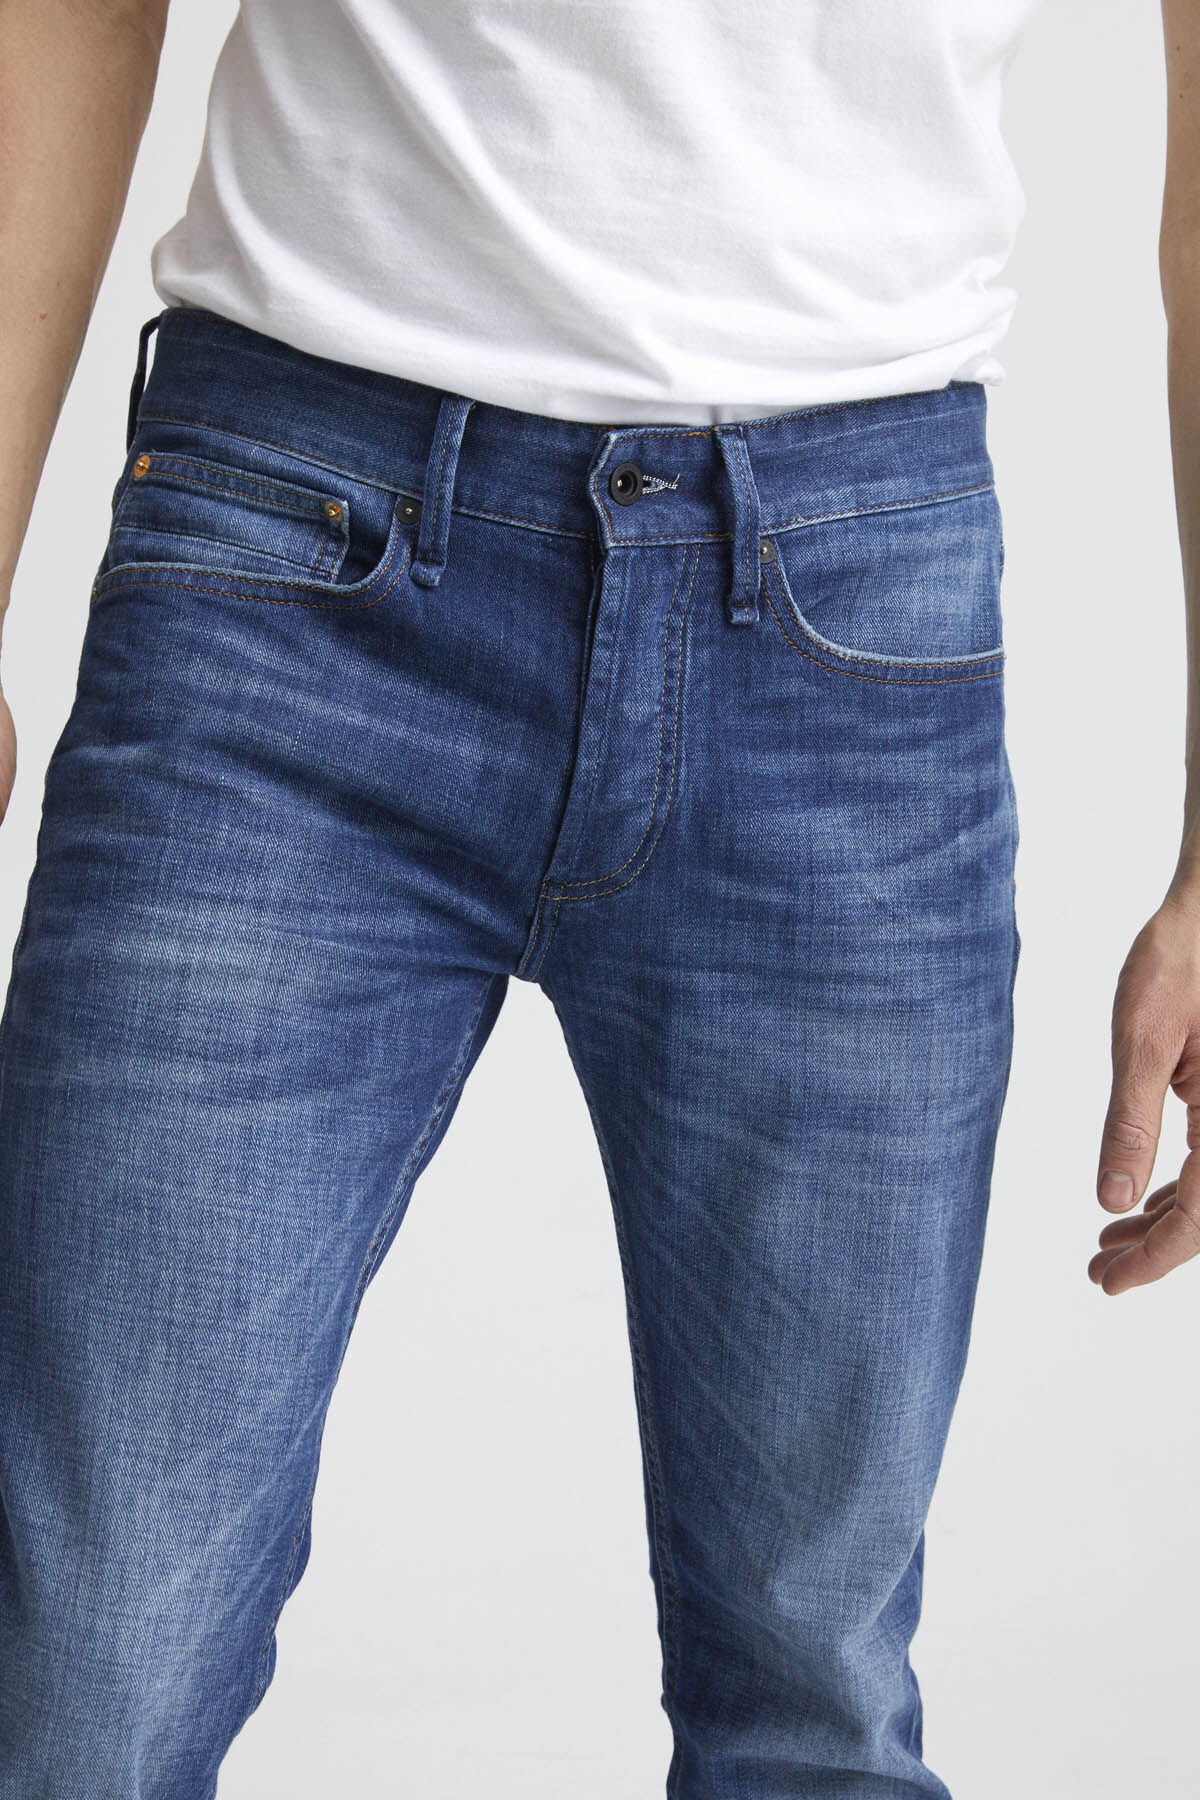 BOLT Left-Hand, Indigo Stretch Denim - Skinny Fit